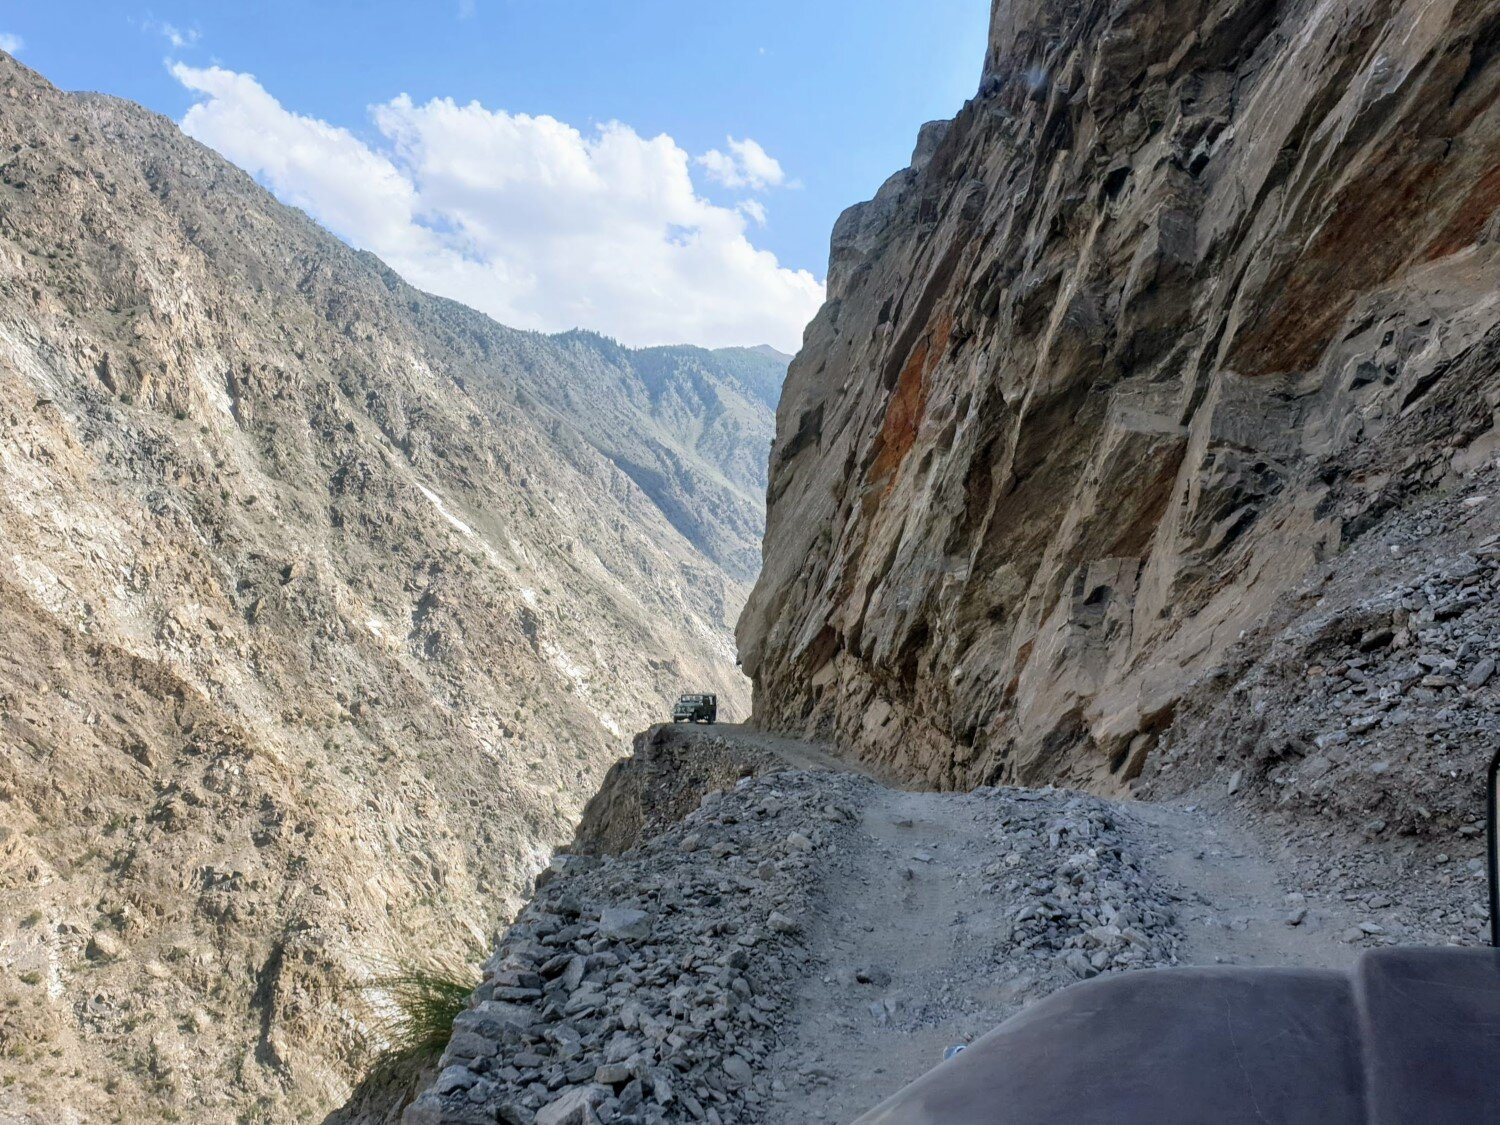 The trip to Fairy Meadows involves a 2 hour jeep ride along some pretty sketchy terrain!